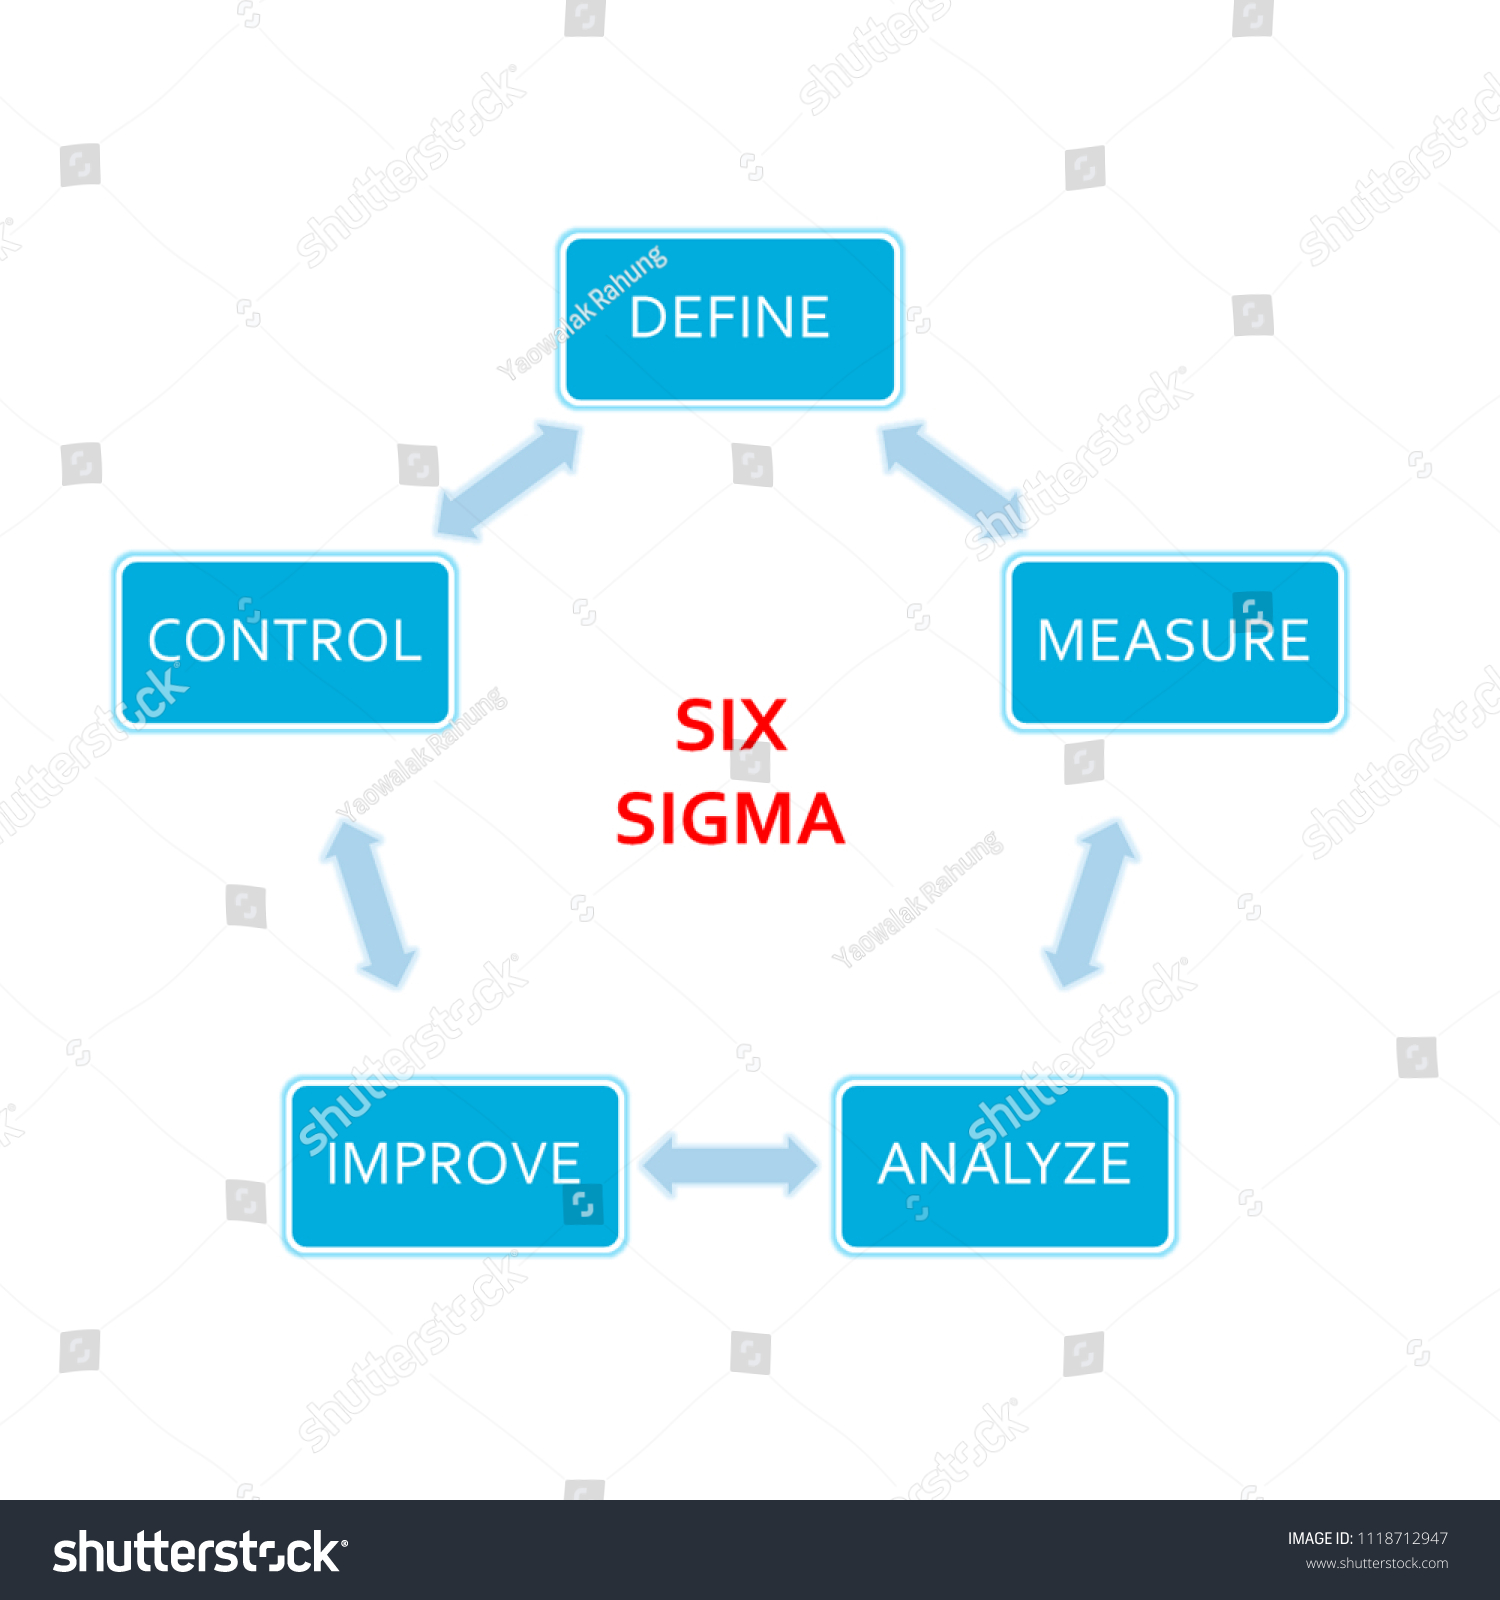 hight resolution of picture diagram of dmaic application method based on the six sigma principle of the industry